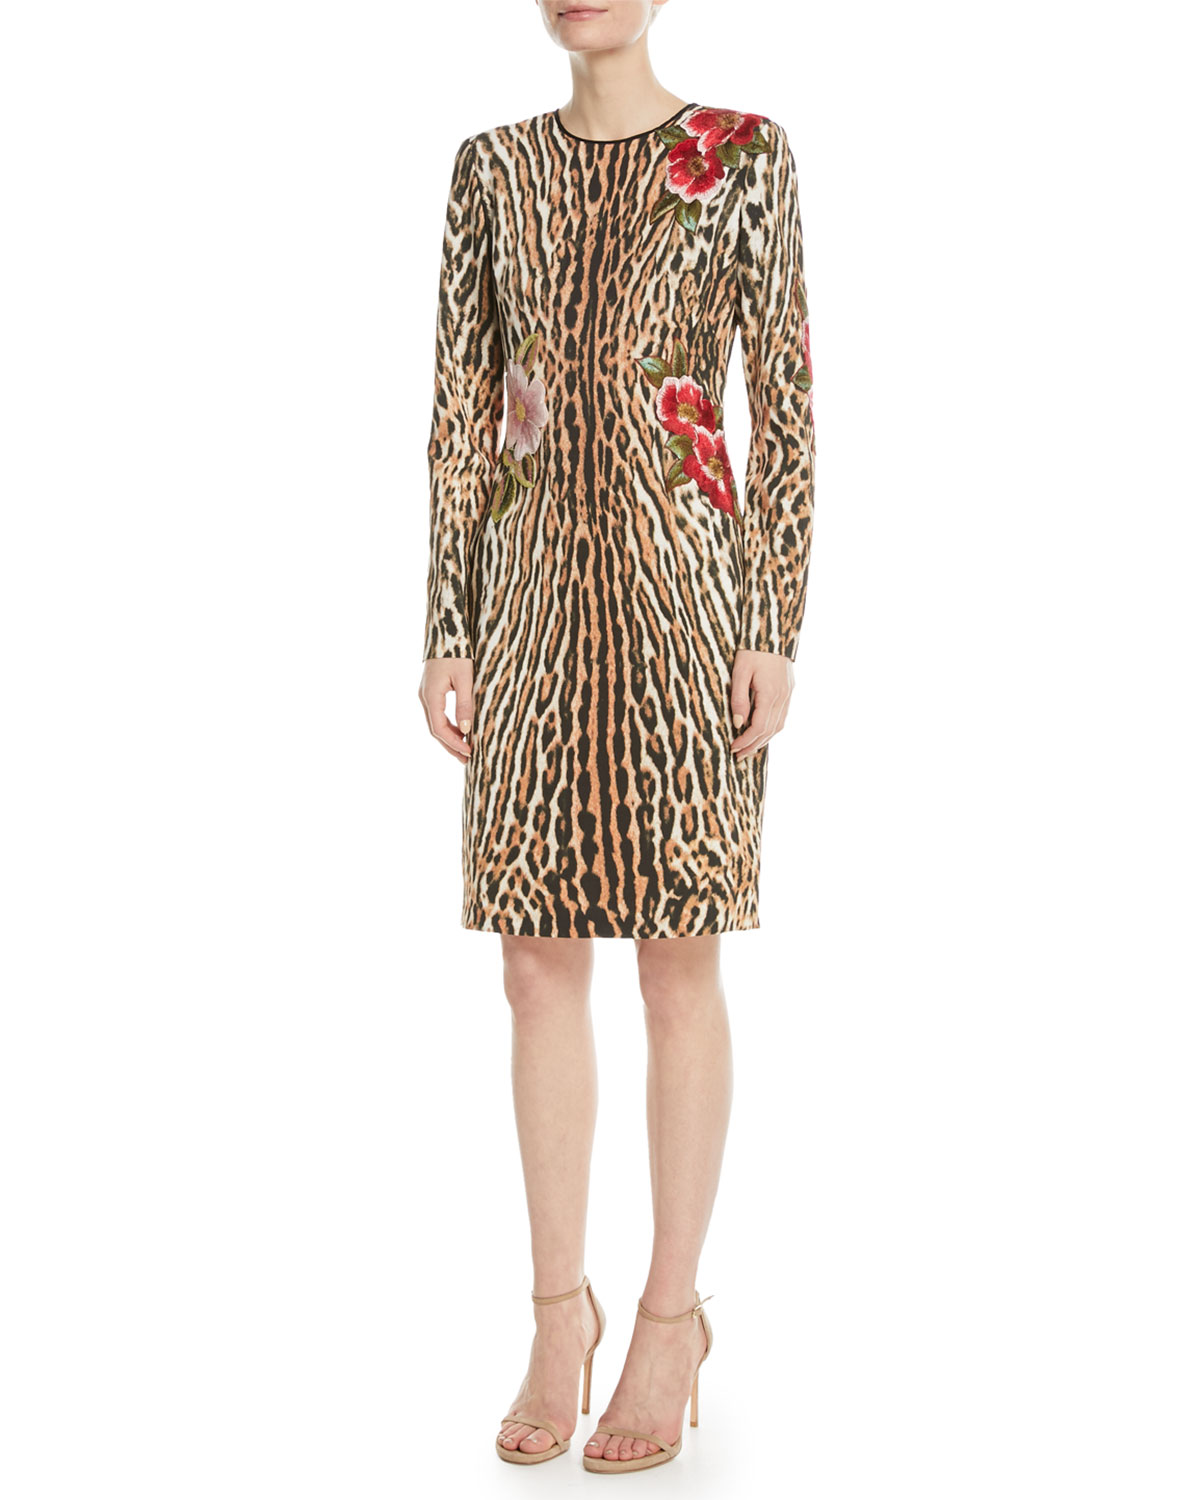 Leopard Sheath Dress w/ Floral Appliqué